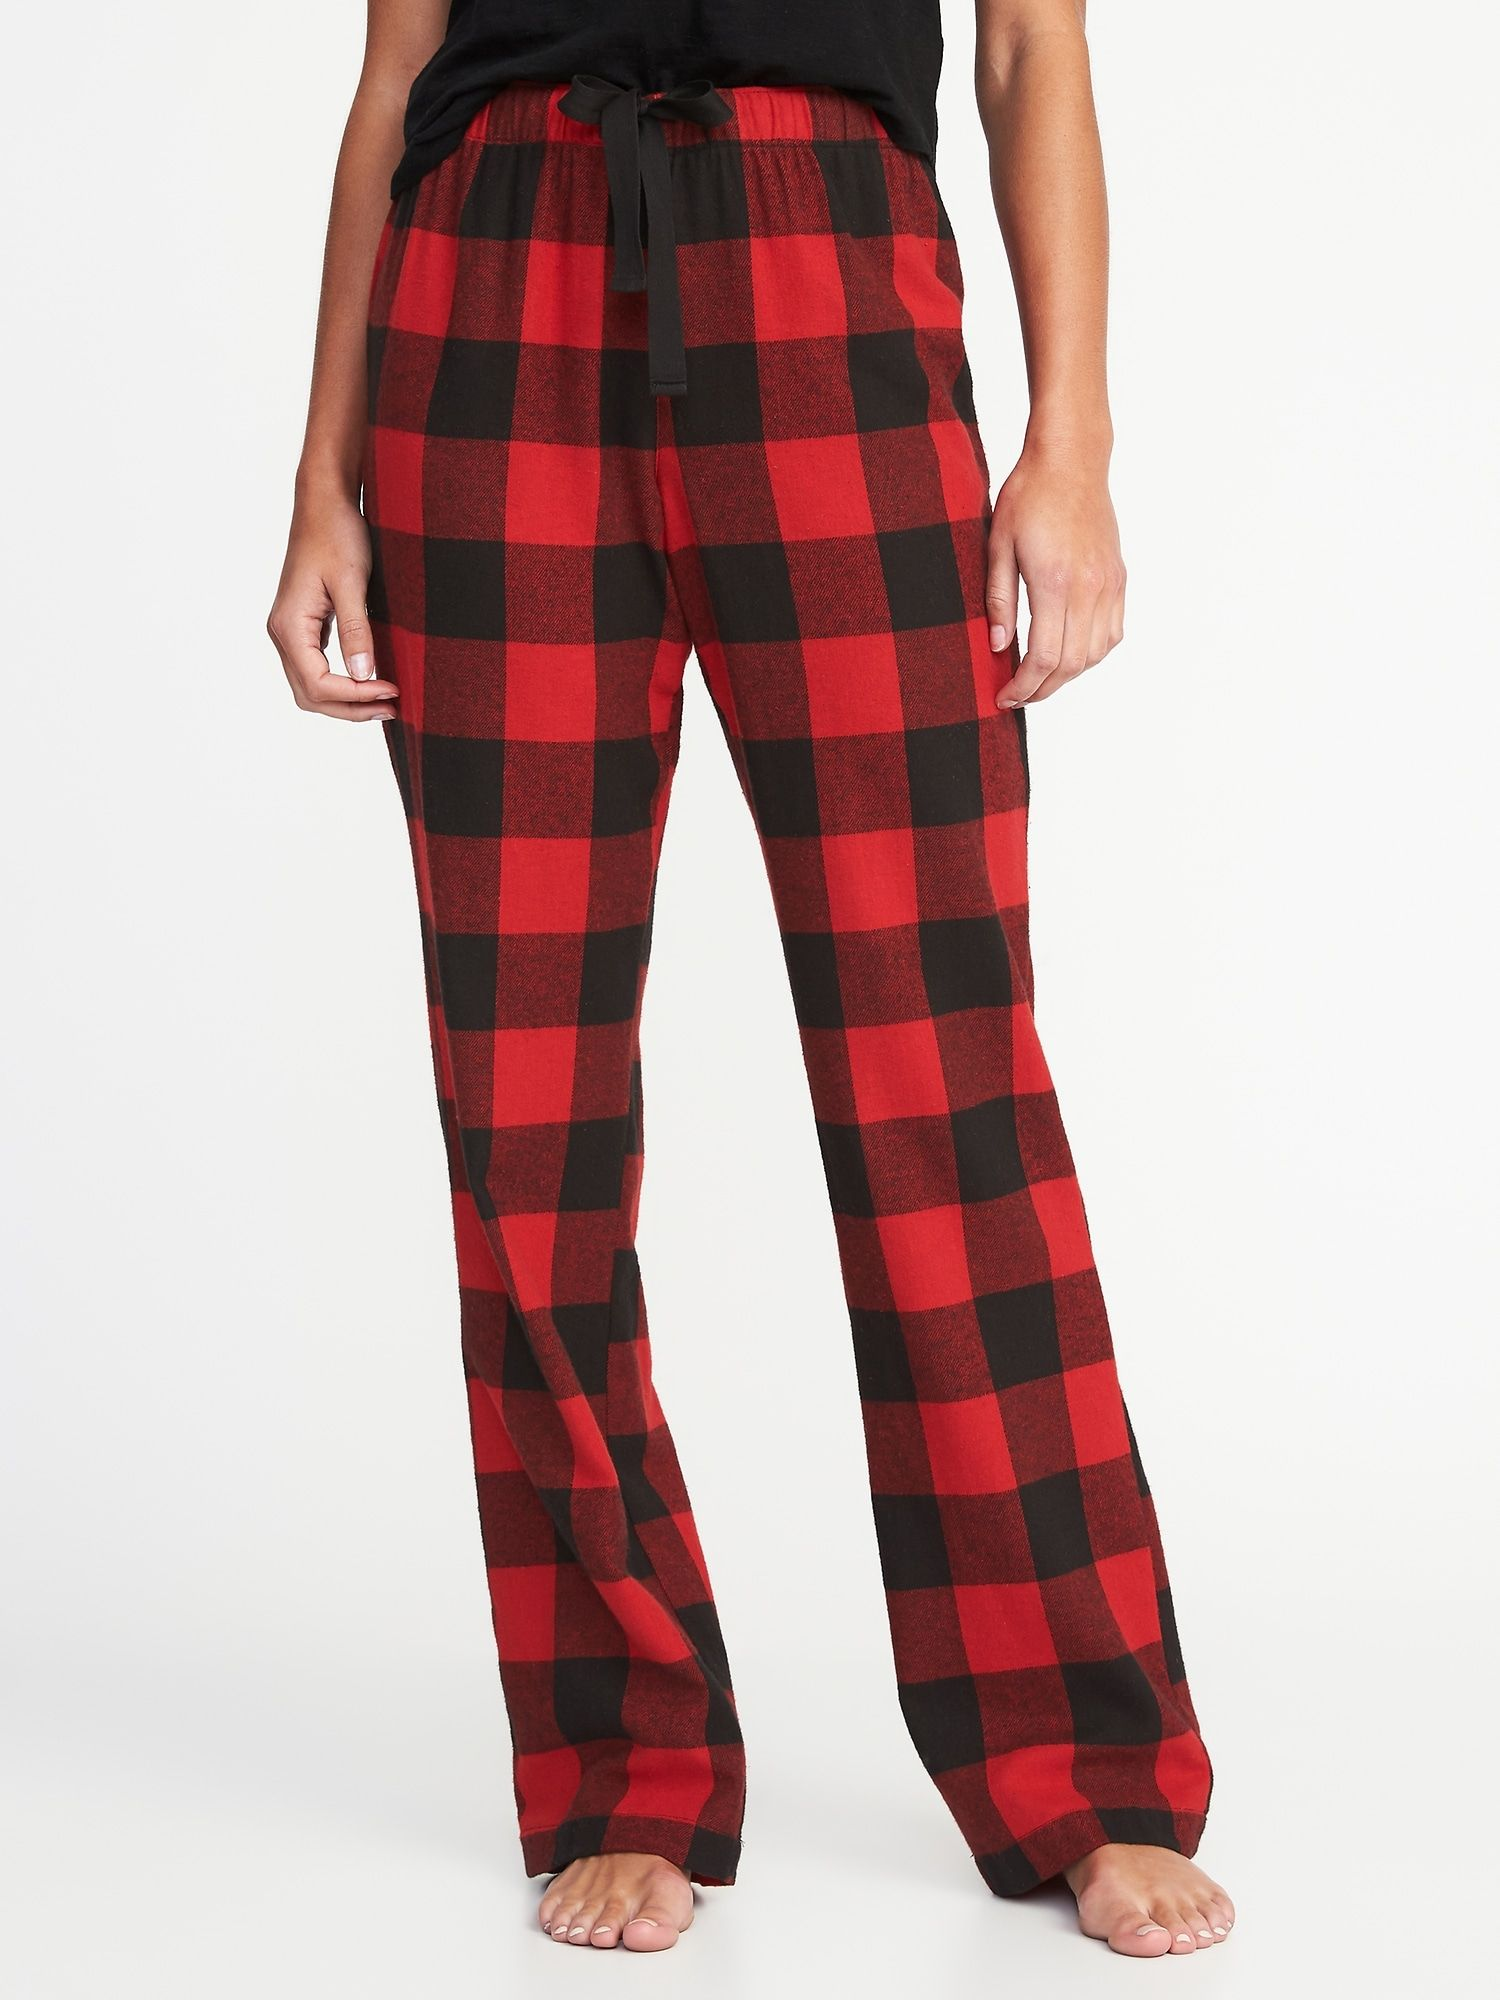 a1add85d6413 Patterned Flannel Sleep Pants for Women in 2019